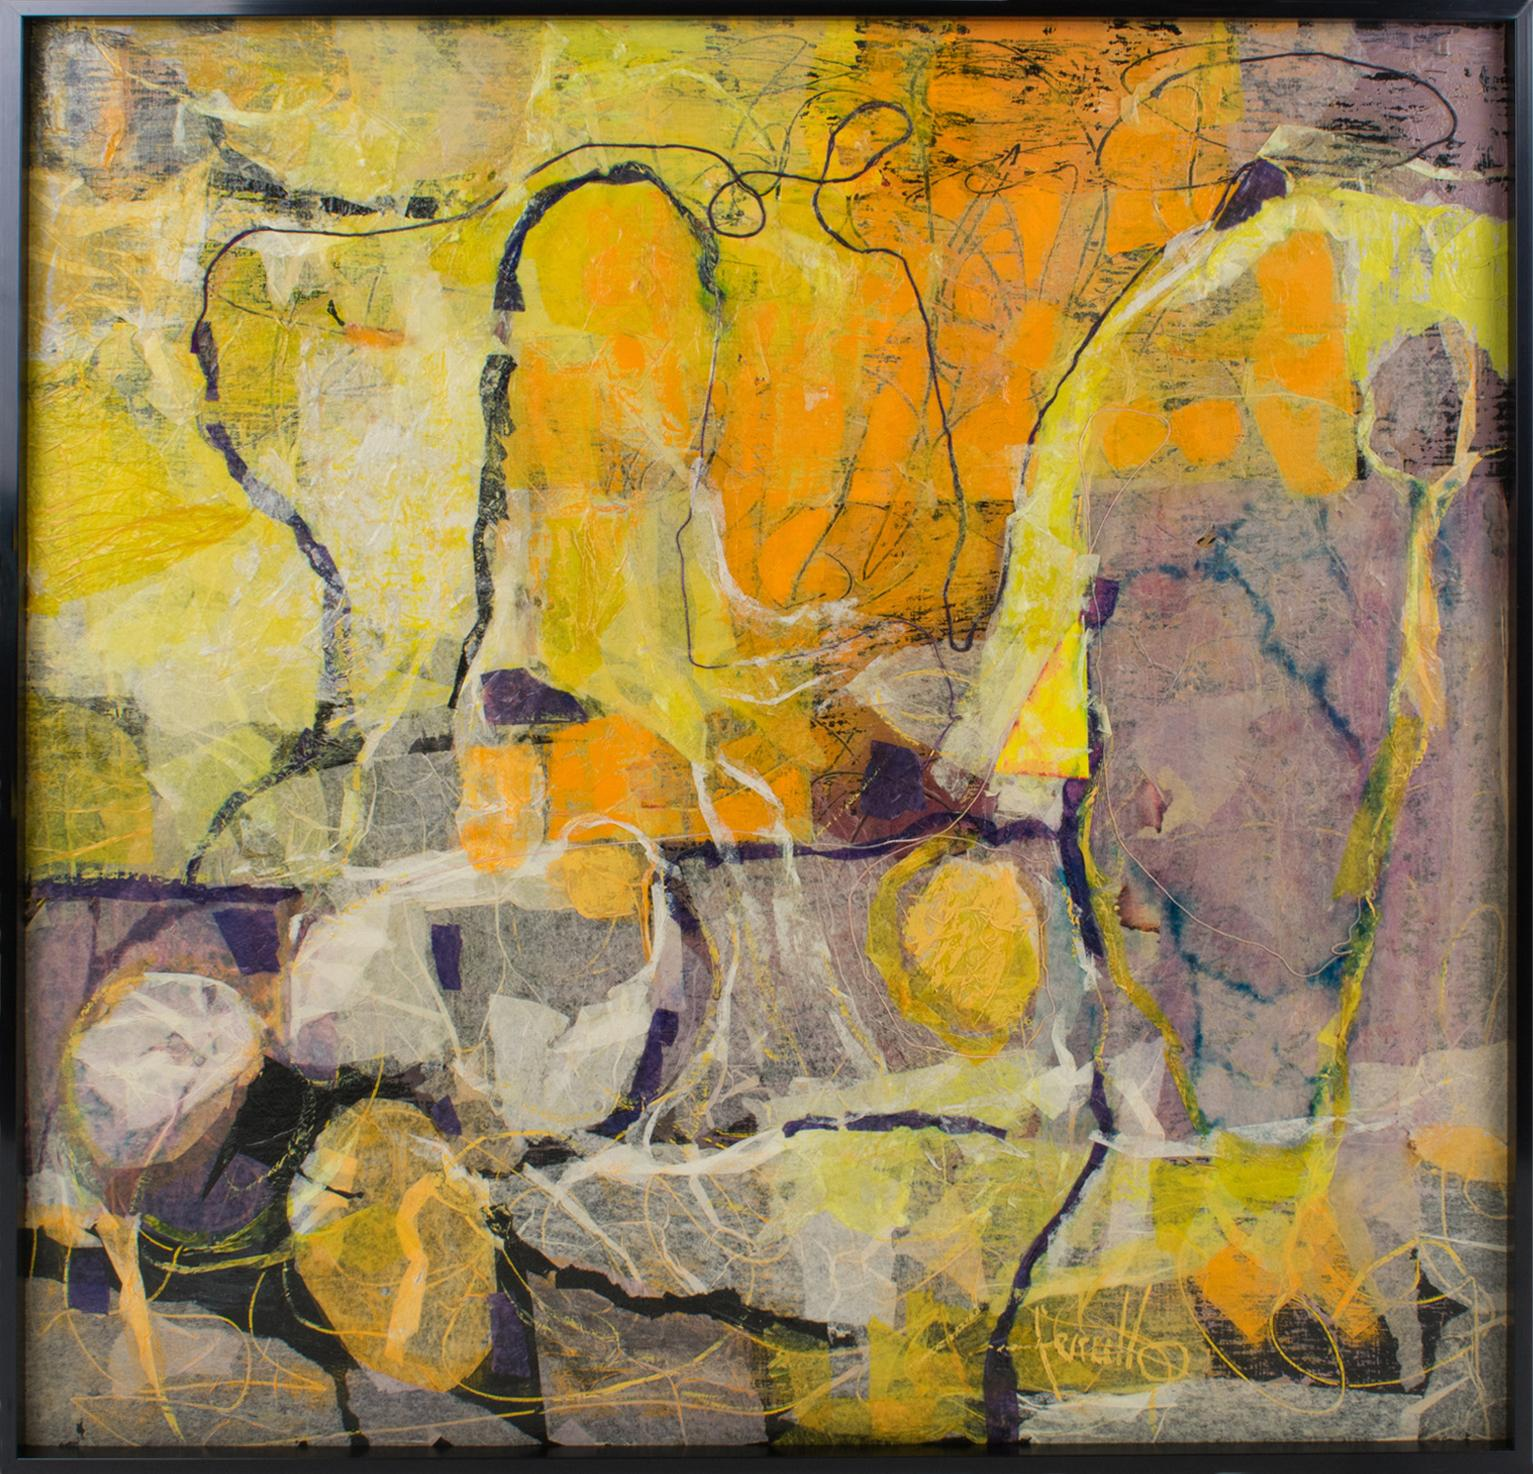 Mid Century Colorful Collage Abstract Painting by Edith Ferullo